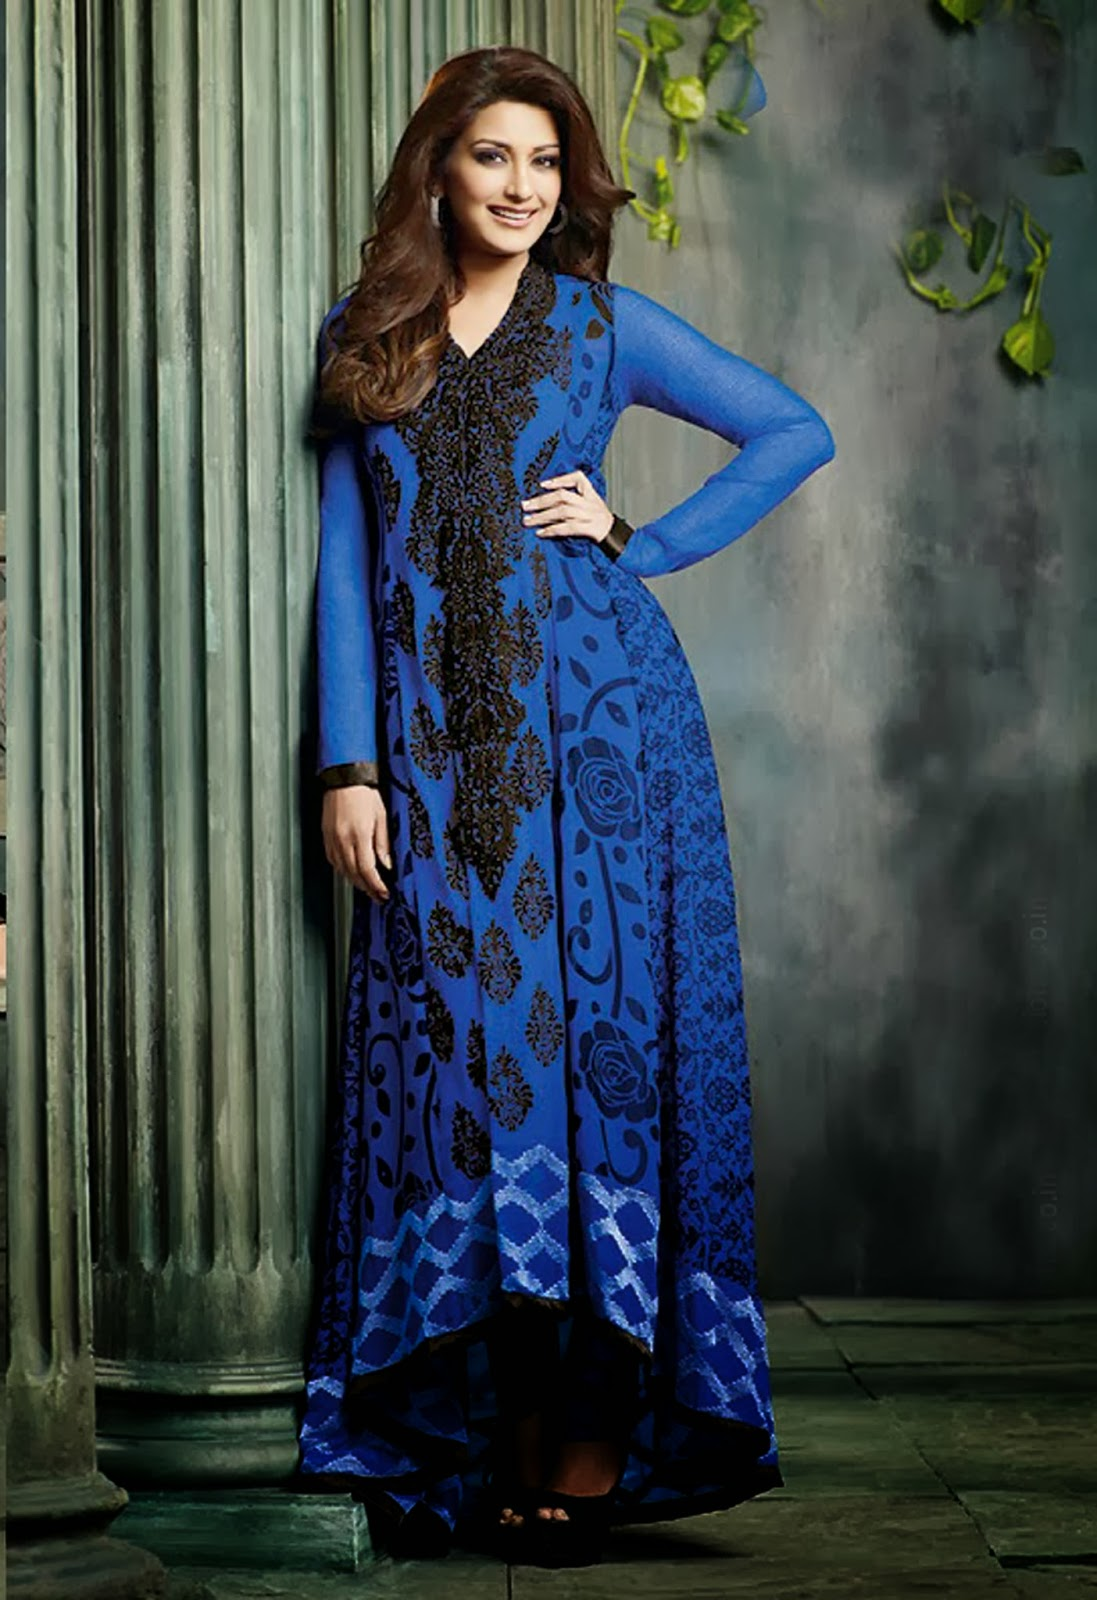 Sonali Bendre in Stylish Designers Bollywood Anarkali Suit